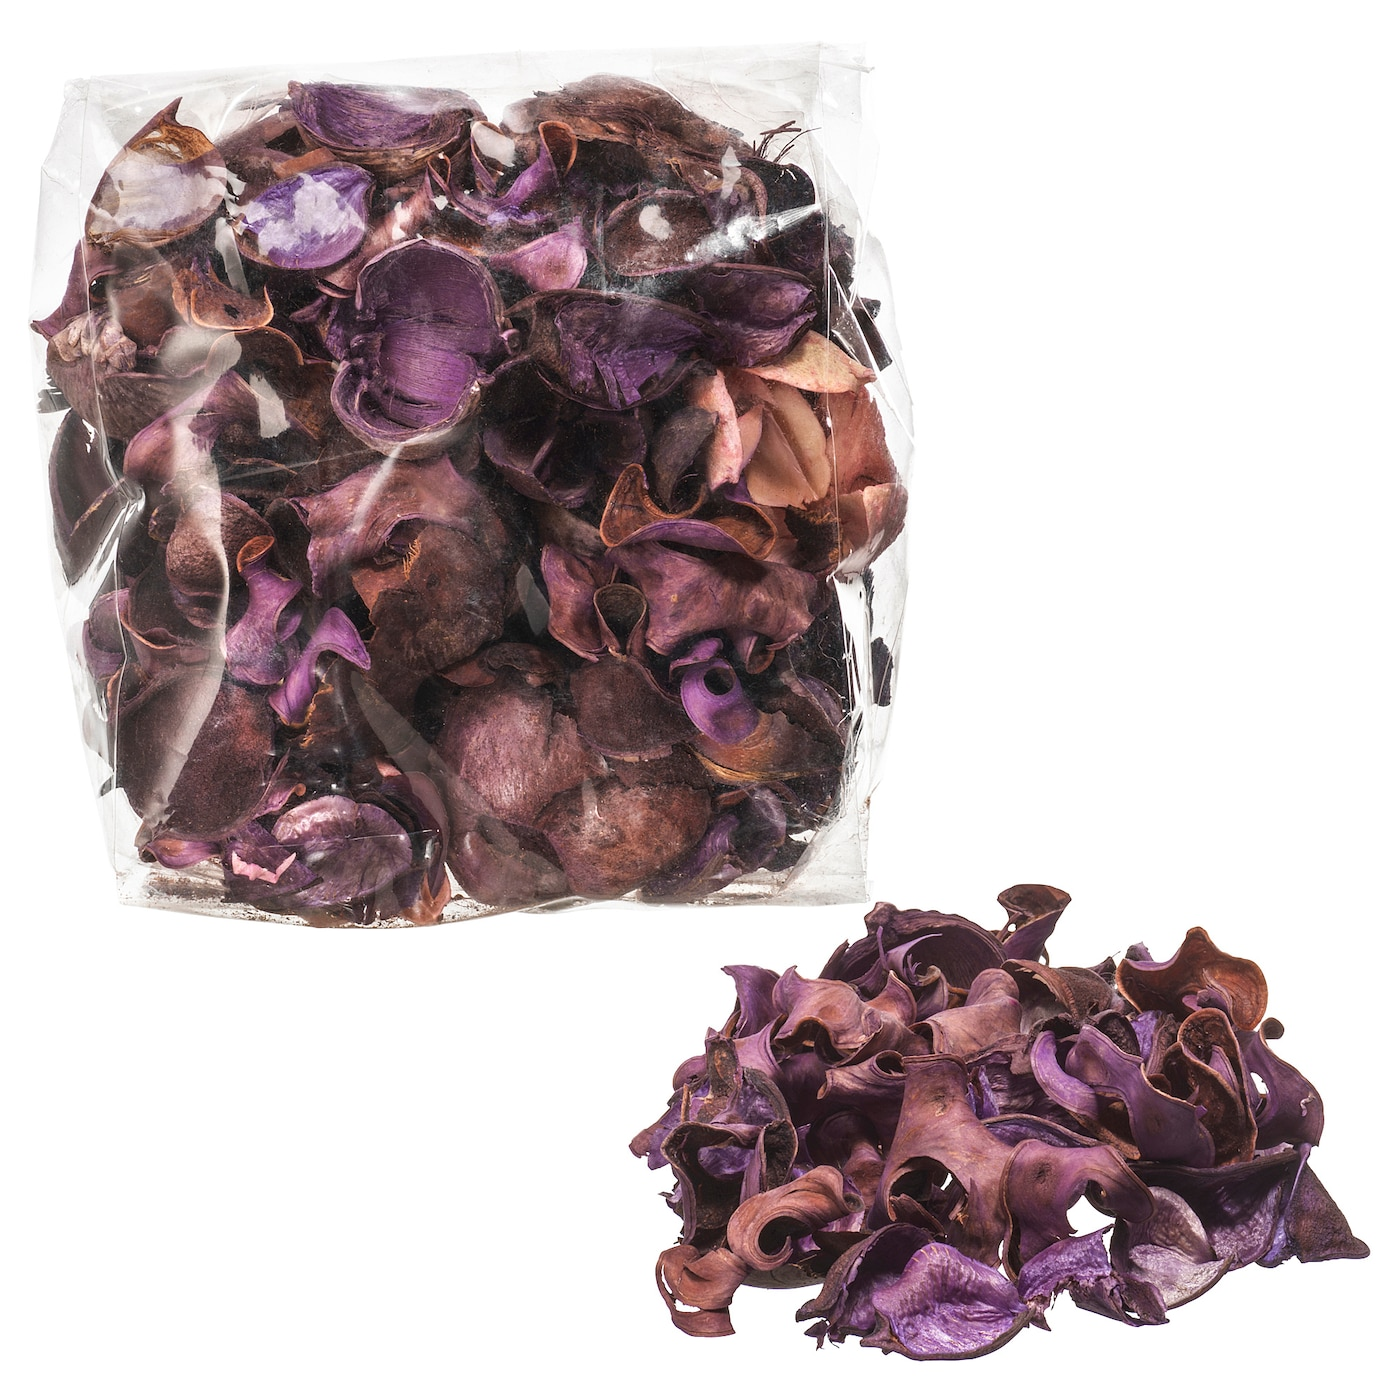 IKEA DOFTA potpourri Distinct scent of sweet blackberries with hints of mint.